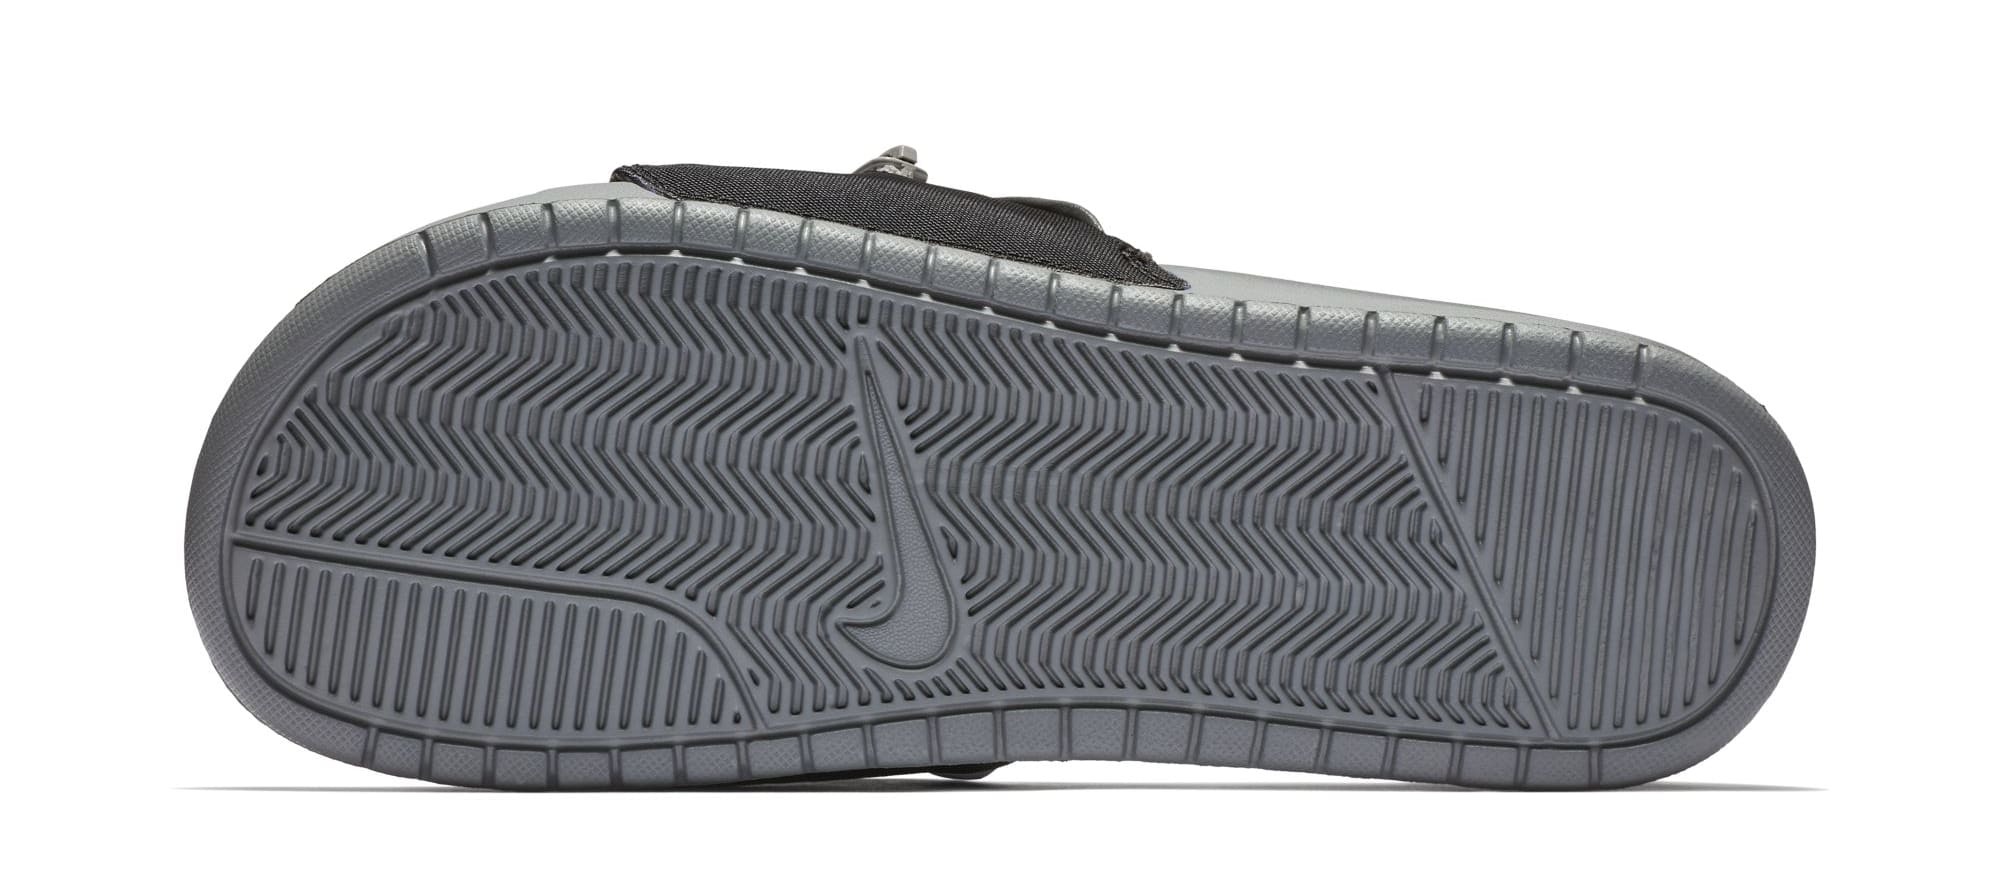 Nike Benassi JDI 'Fanny Pack' Black (Sole)